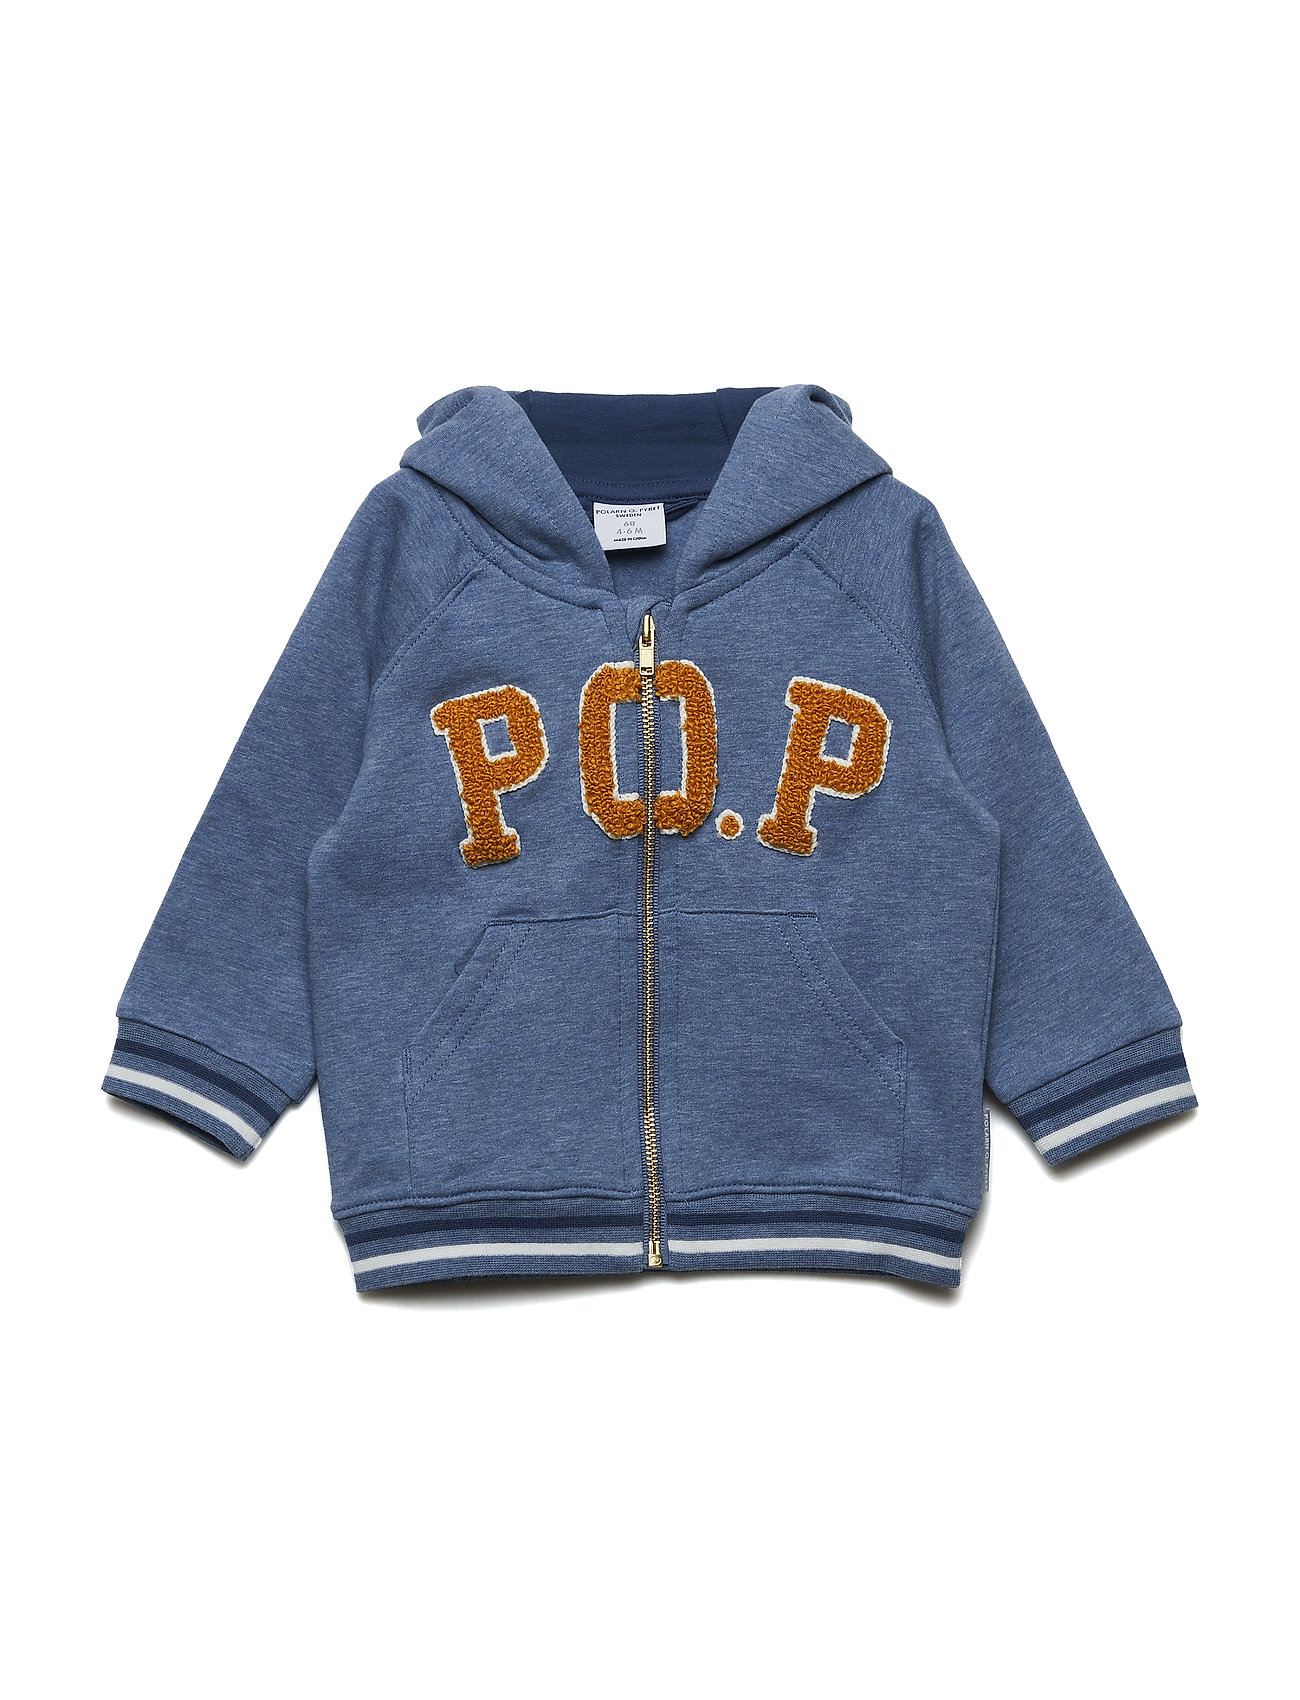 Polarn O. Pyret Sweatshirt Applique NB - CORONET BLUE